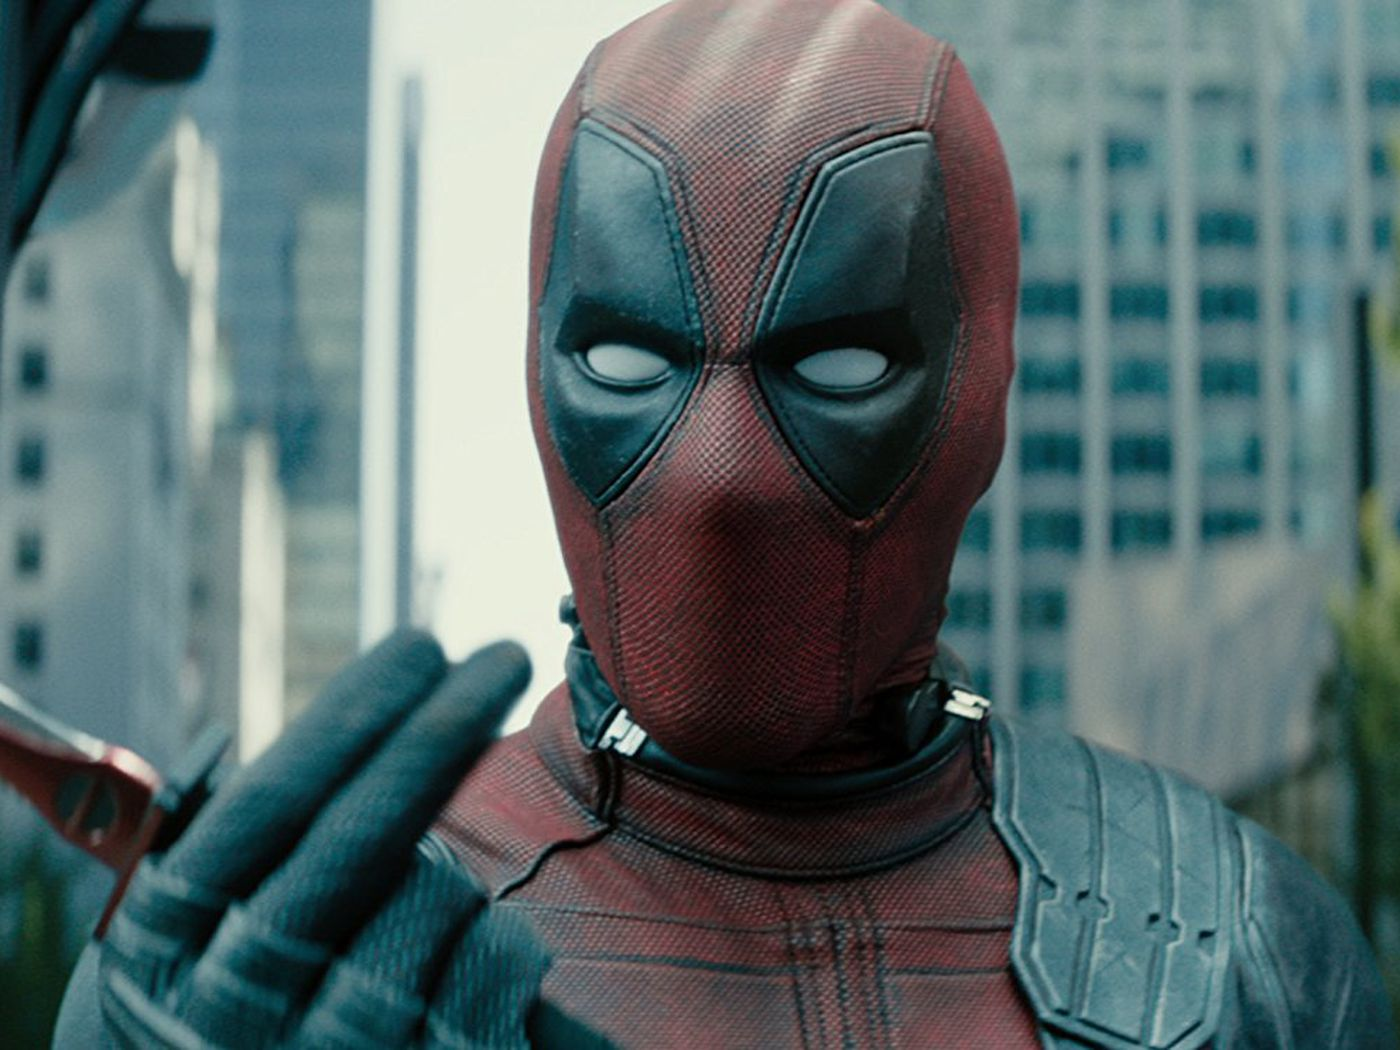 Deadpool 2 review: this might be the most entertaining superhero